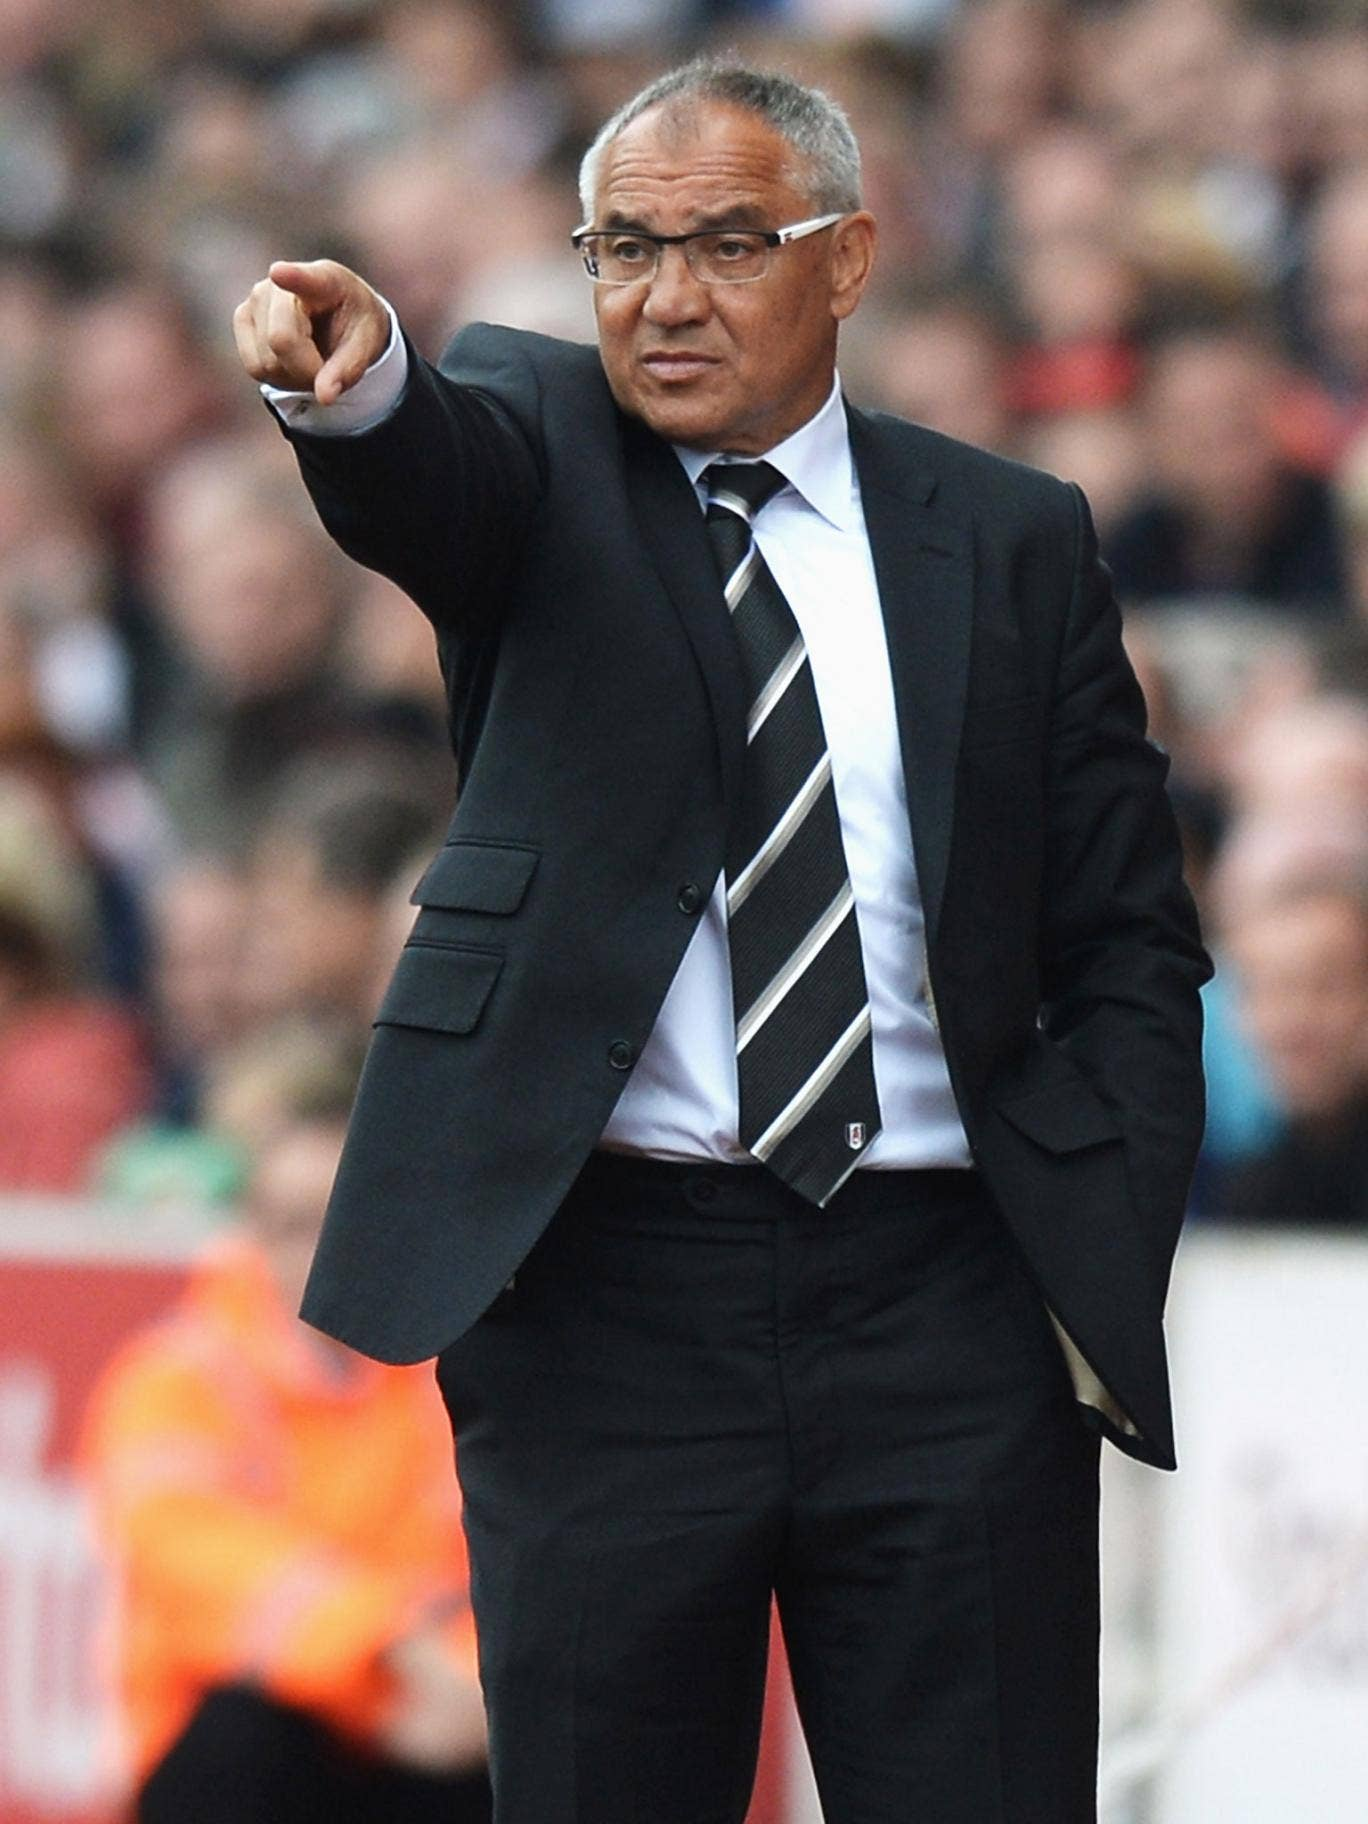 Felix Magath wants to bring youth players into the team